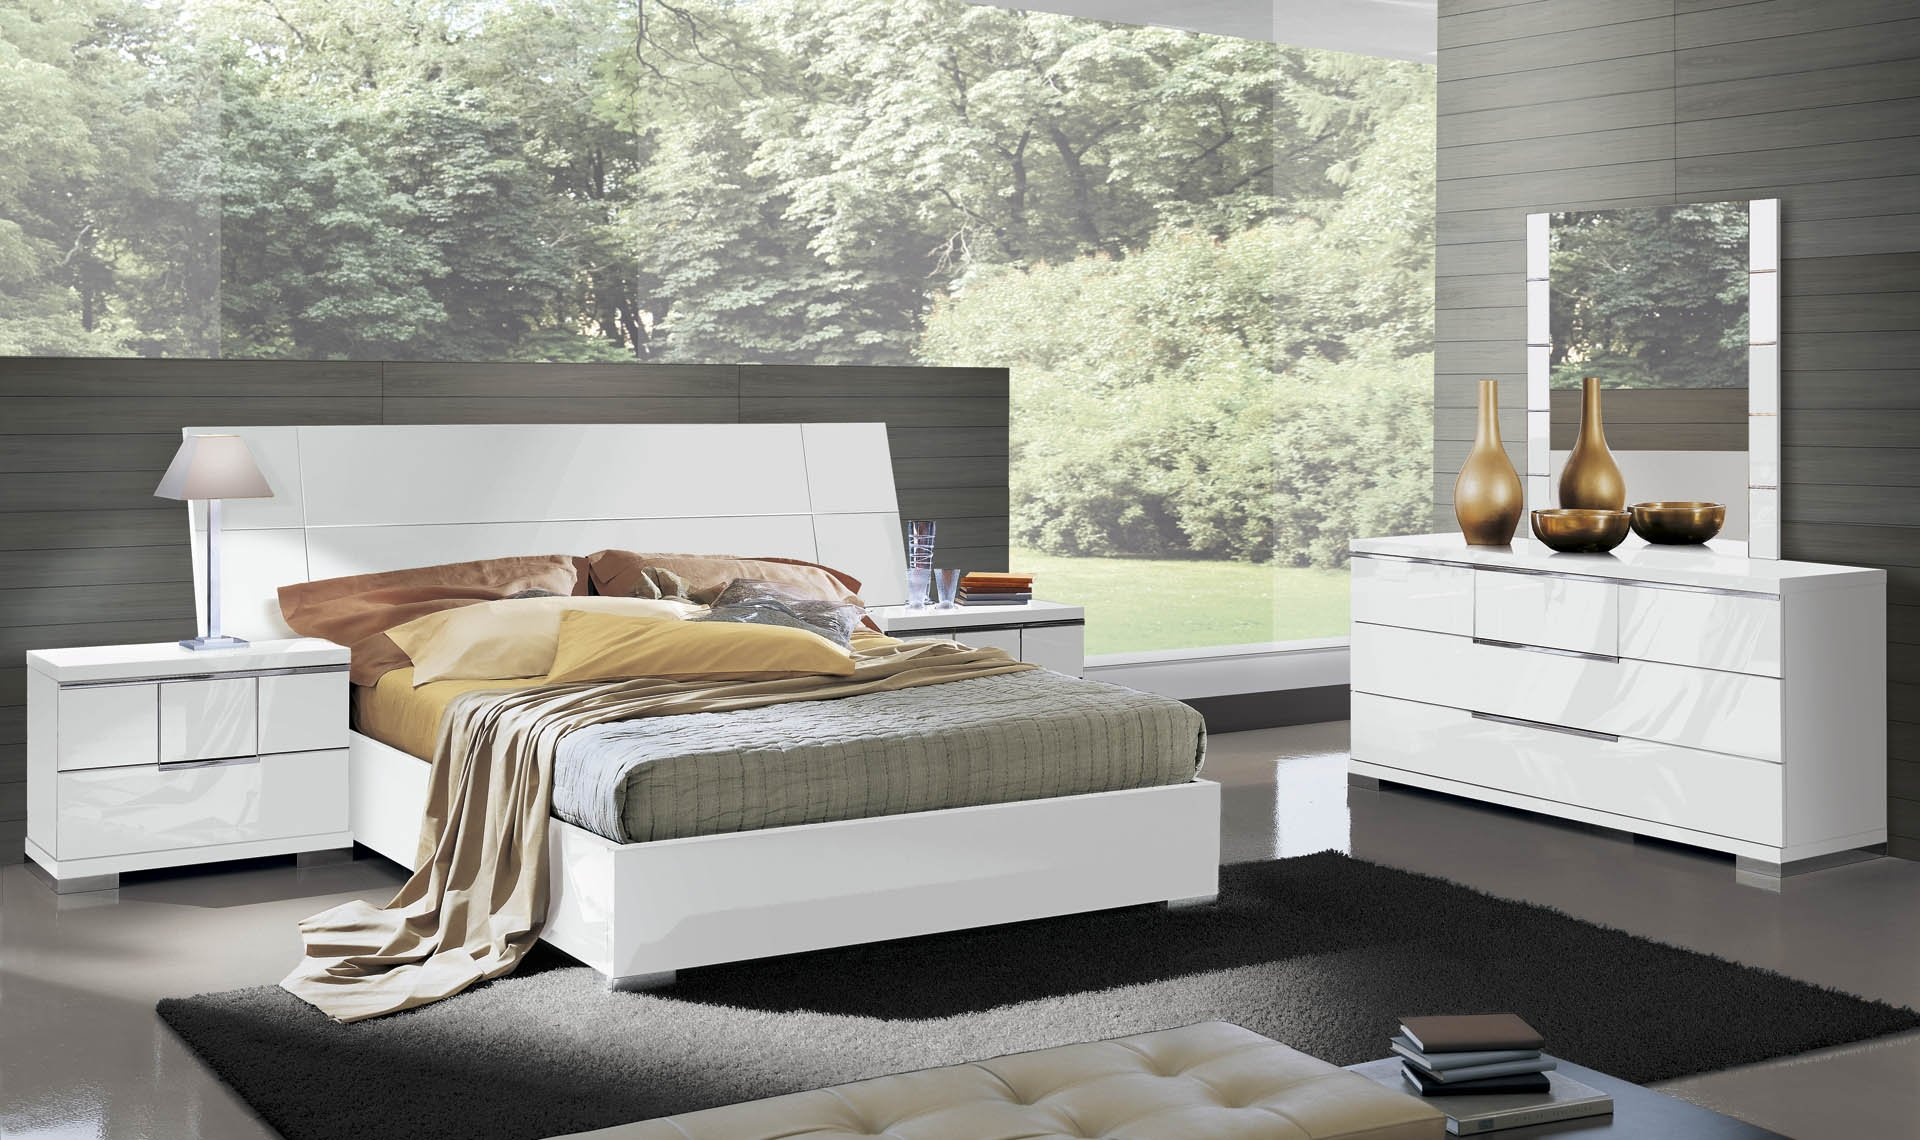 This Asti Platform Bed from Alf Italia will bring an elegant, contemporary look to your bedroom. It features a large panel headboard and a platform base in white high gloss.